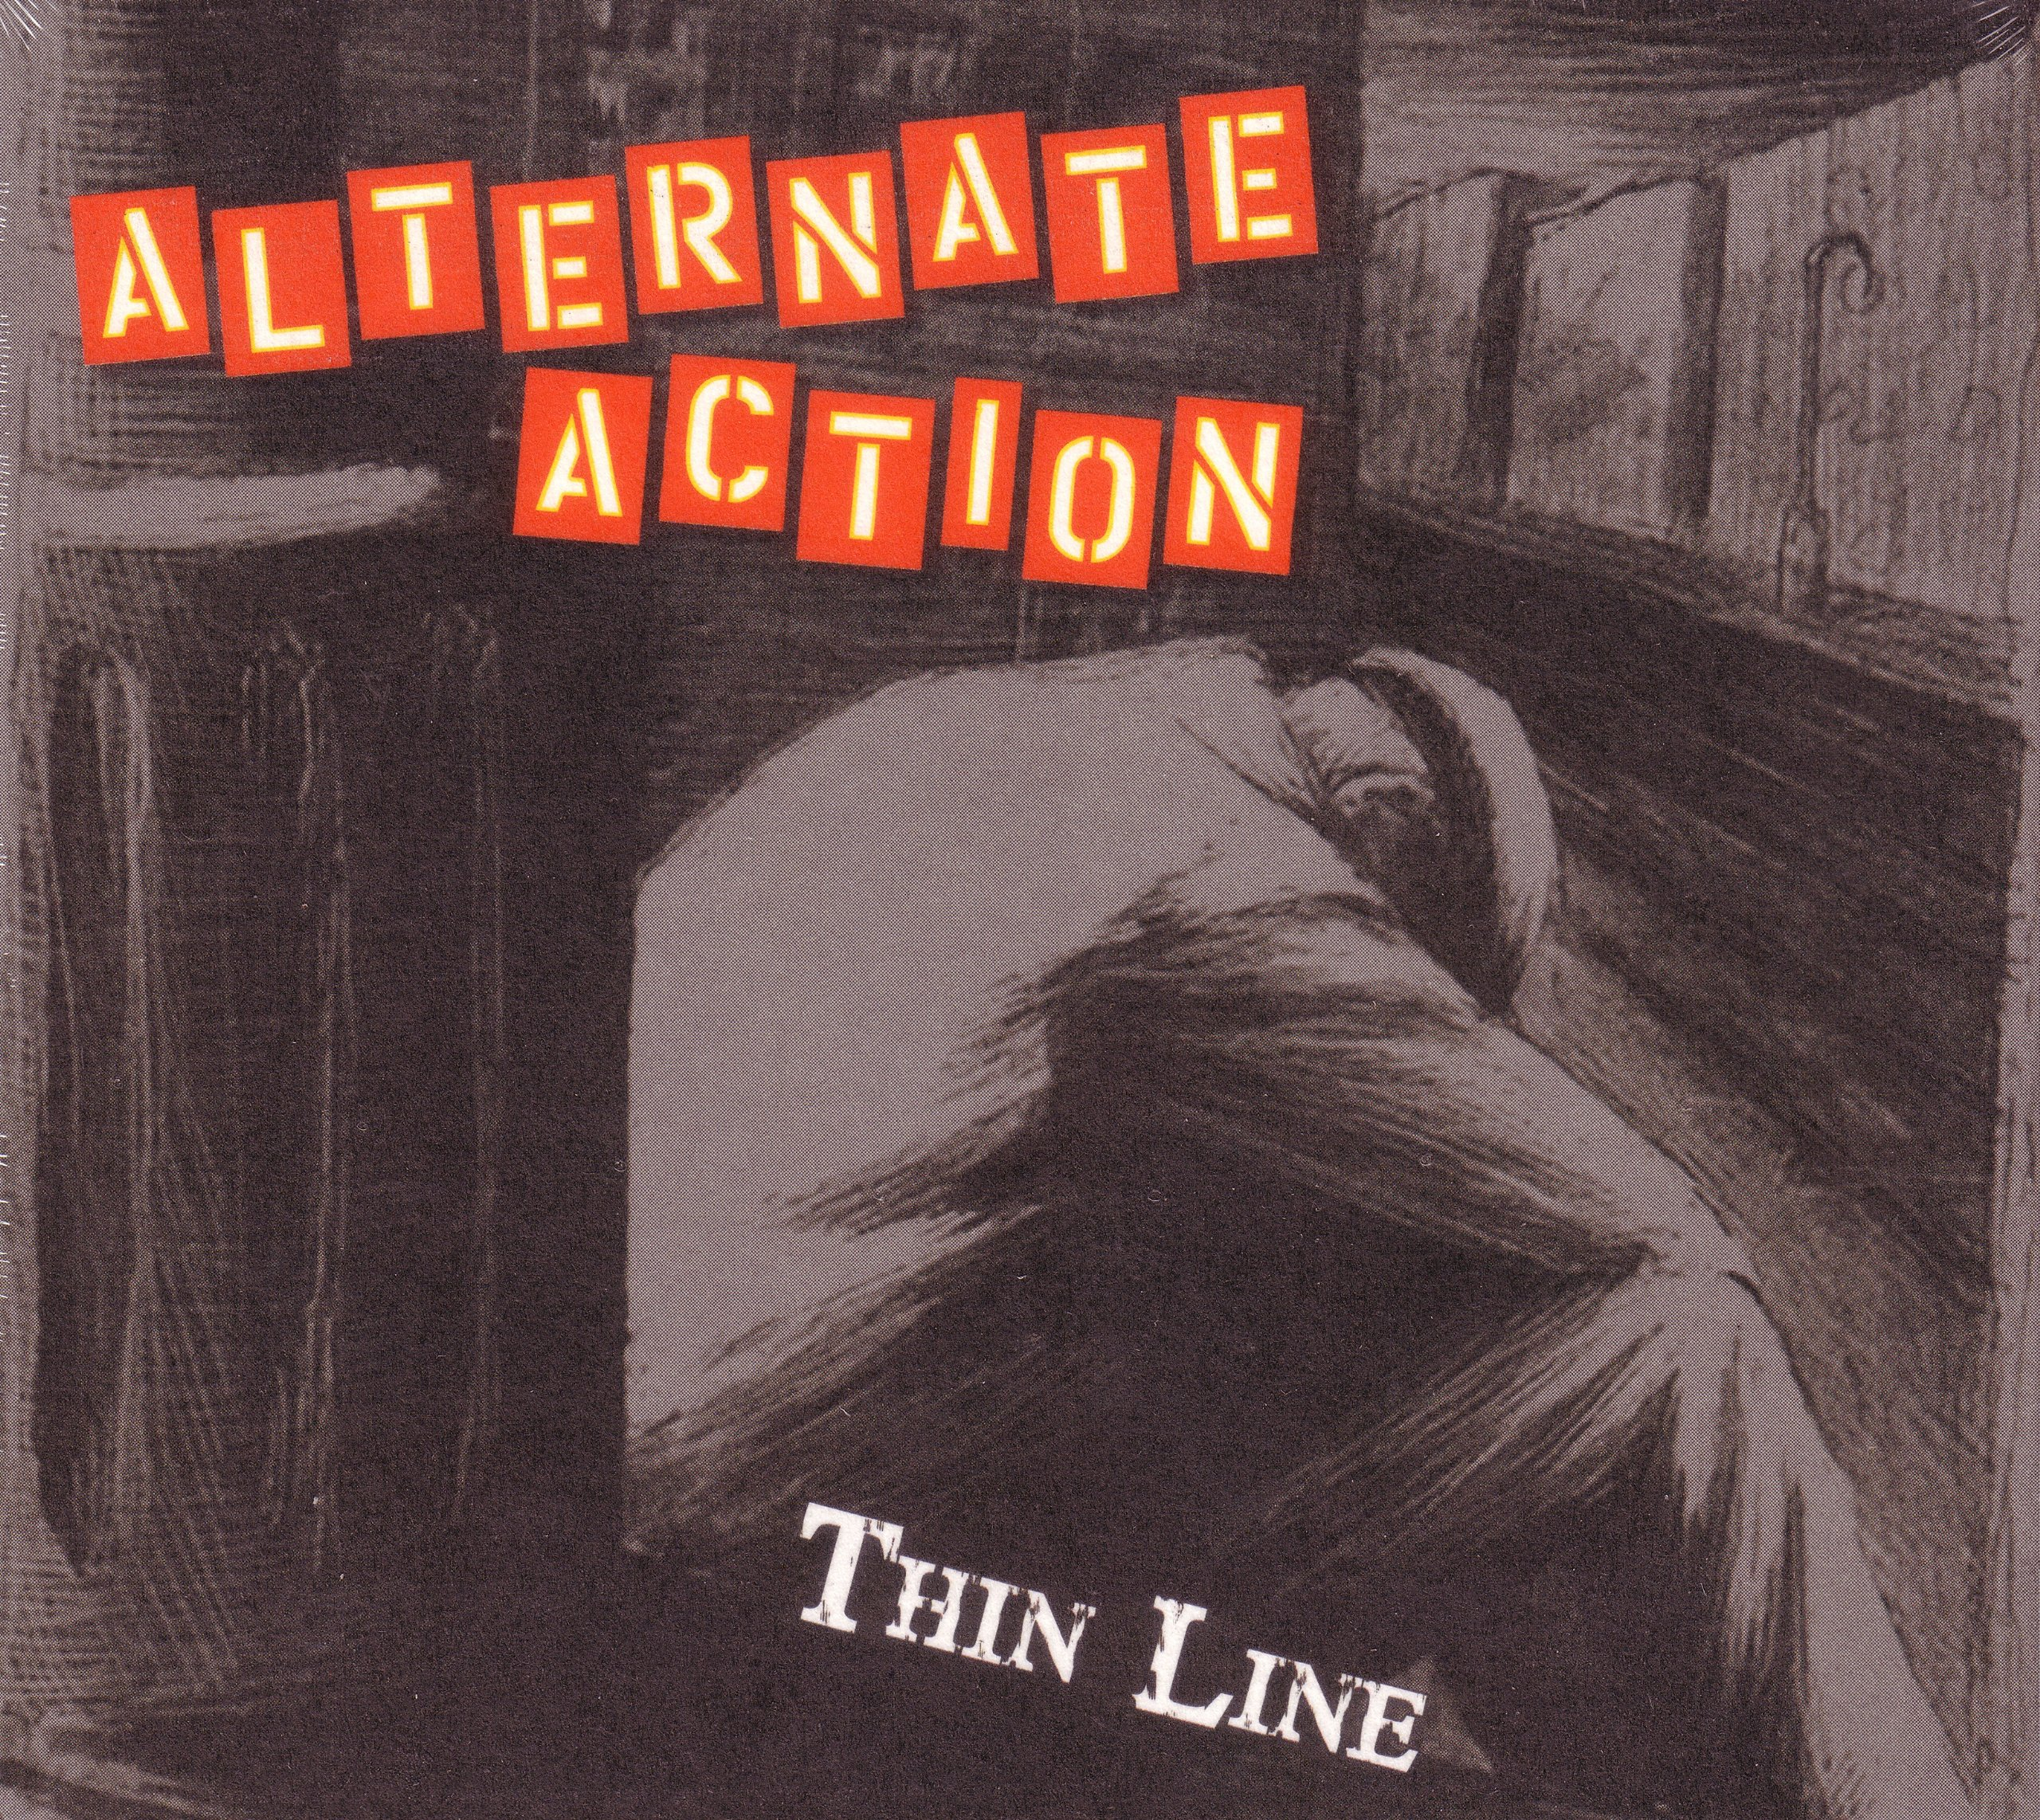 Alternate Action - Thin Line (2008) [FLAC] Download